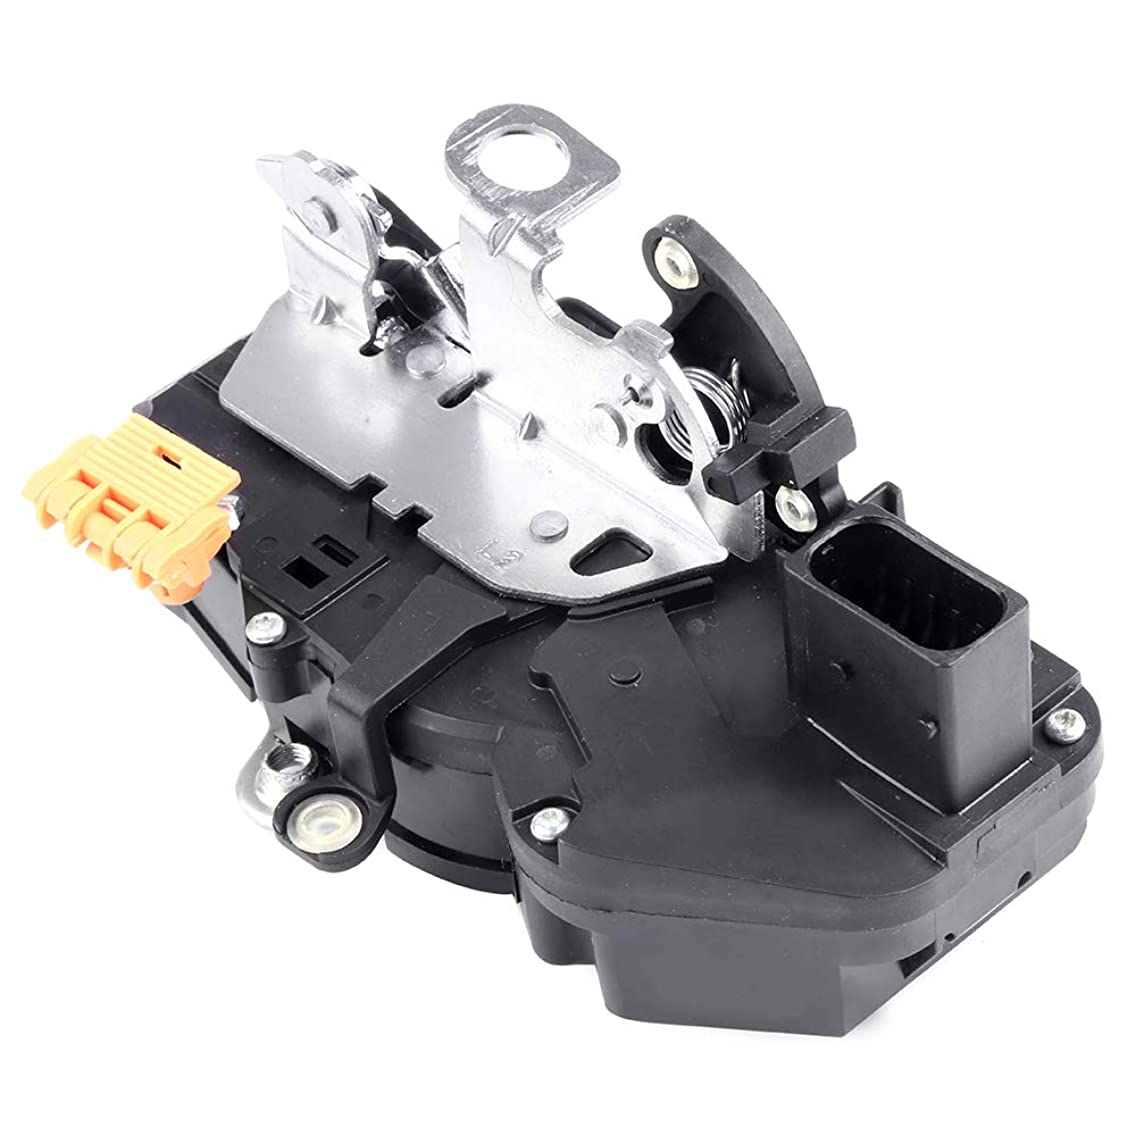 ECCPP Fits for 2010-2012 Chevrolet Silverado/Suburban 2010-2012 Cadillac Escalade 2010-2012 GMC Sierra/Yukon Front Driver Side Door Lock Latch and Actuator 931-920